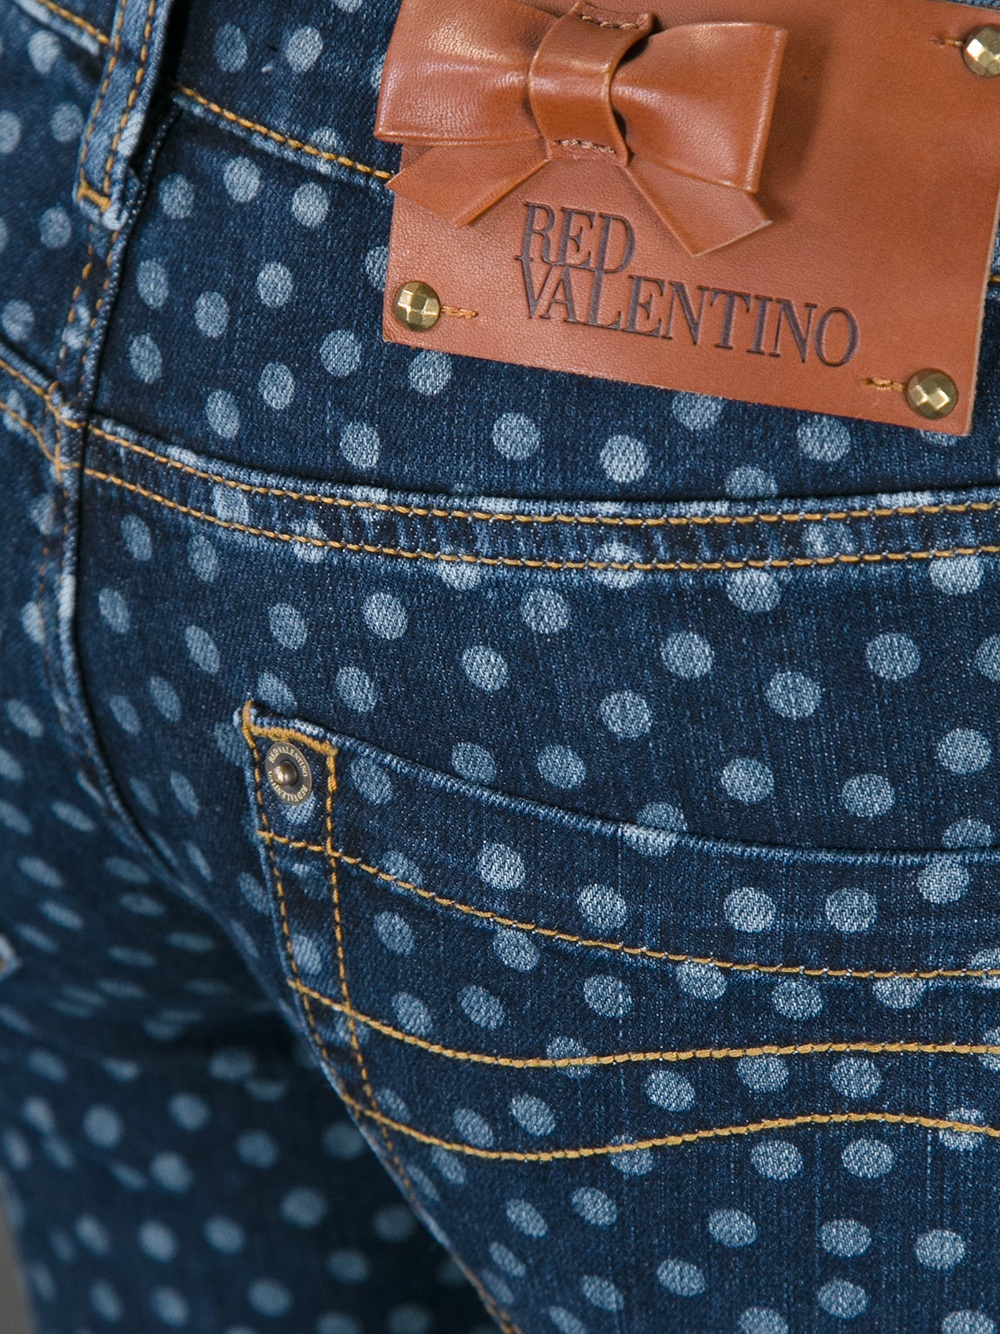 Lyst red valentino polka dot jeans in blue gallery sisterspd